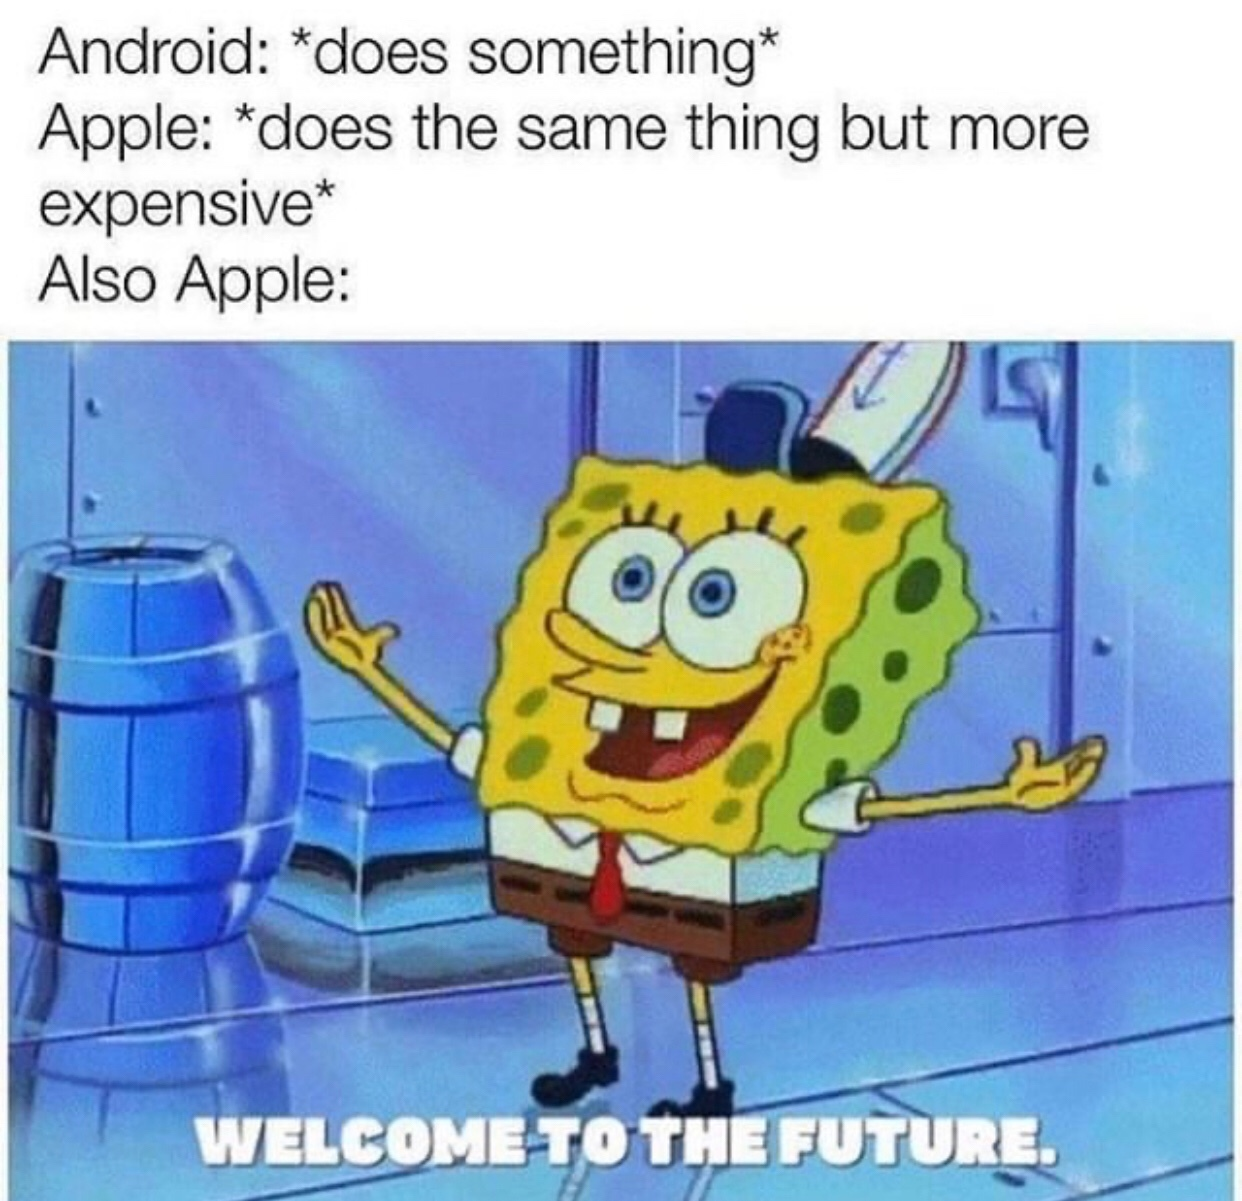 the future is now old man - meme